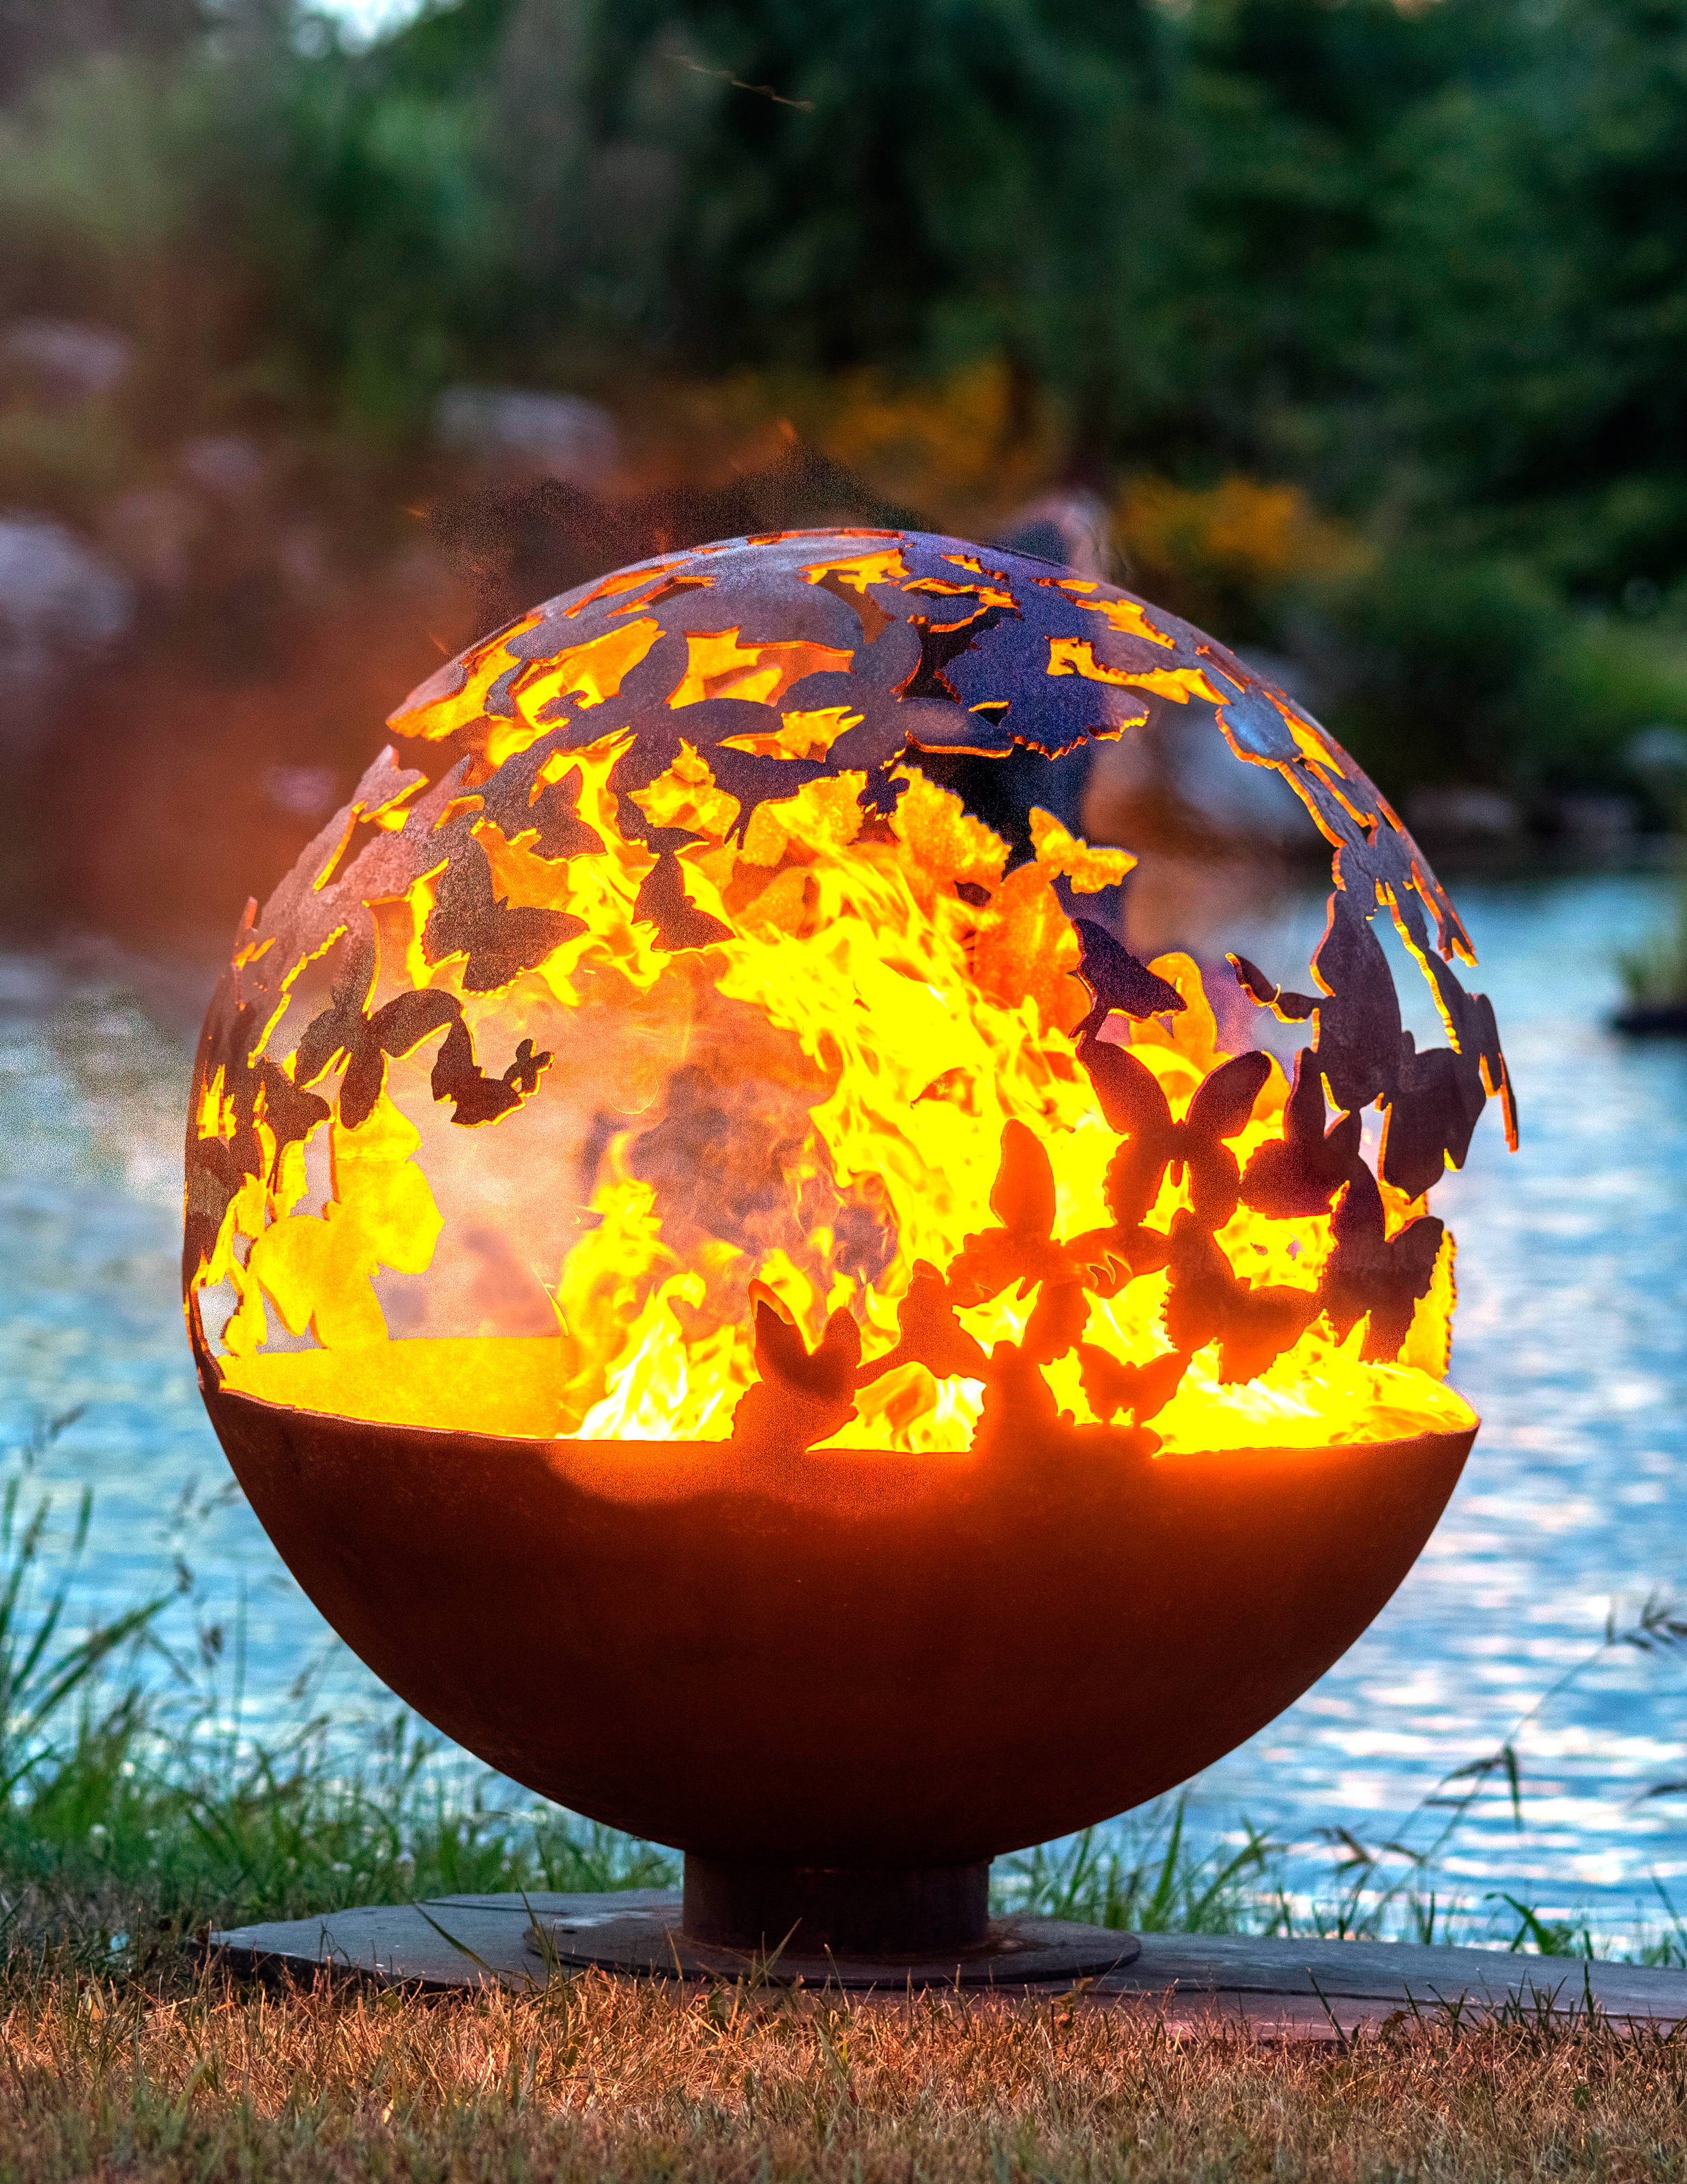 Wings Butterfly Fire Pit Sphere The Fire Pit Gallery